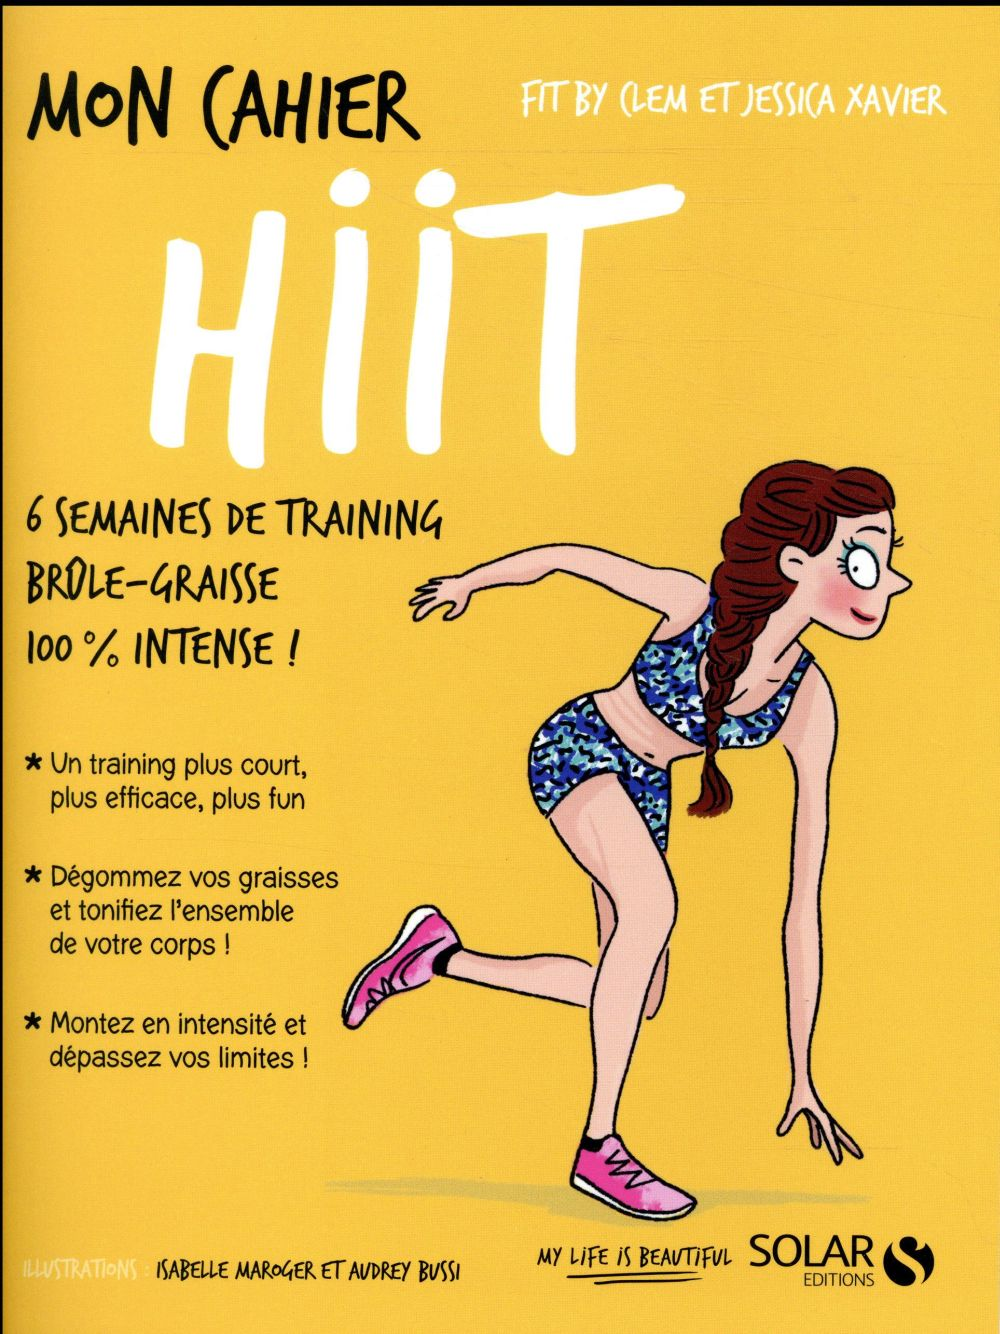 MON CAHIER ; HIIT